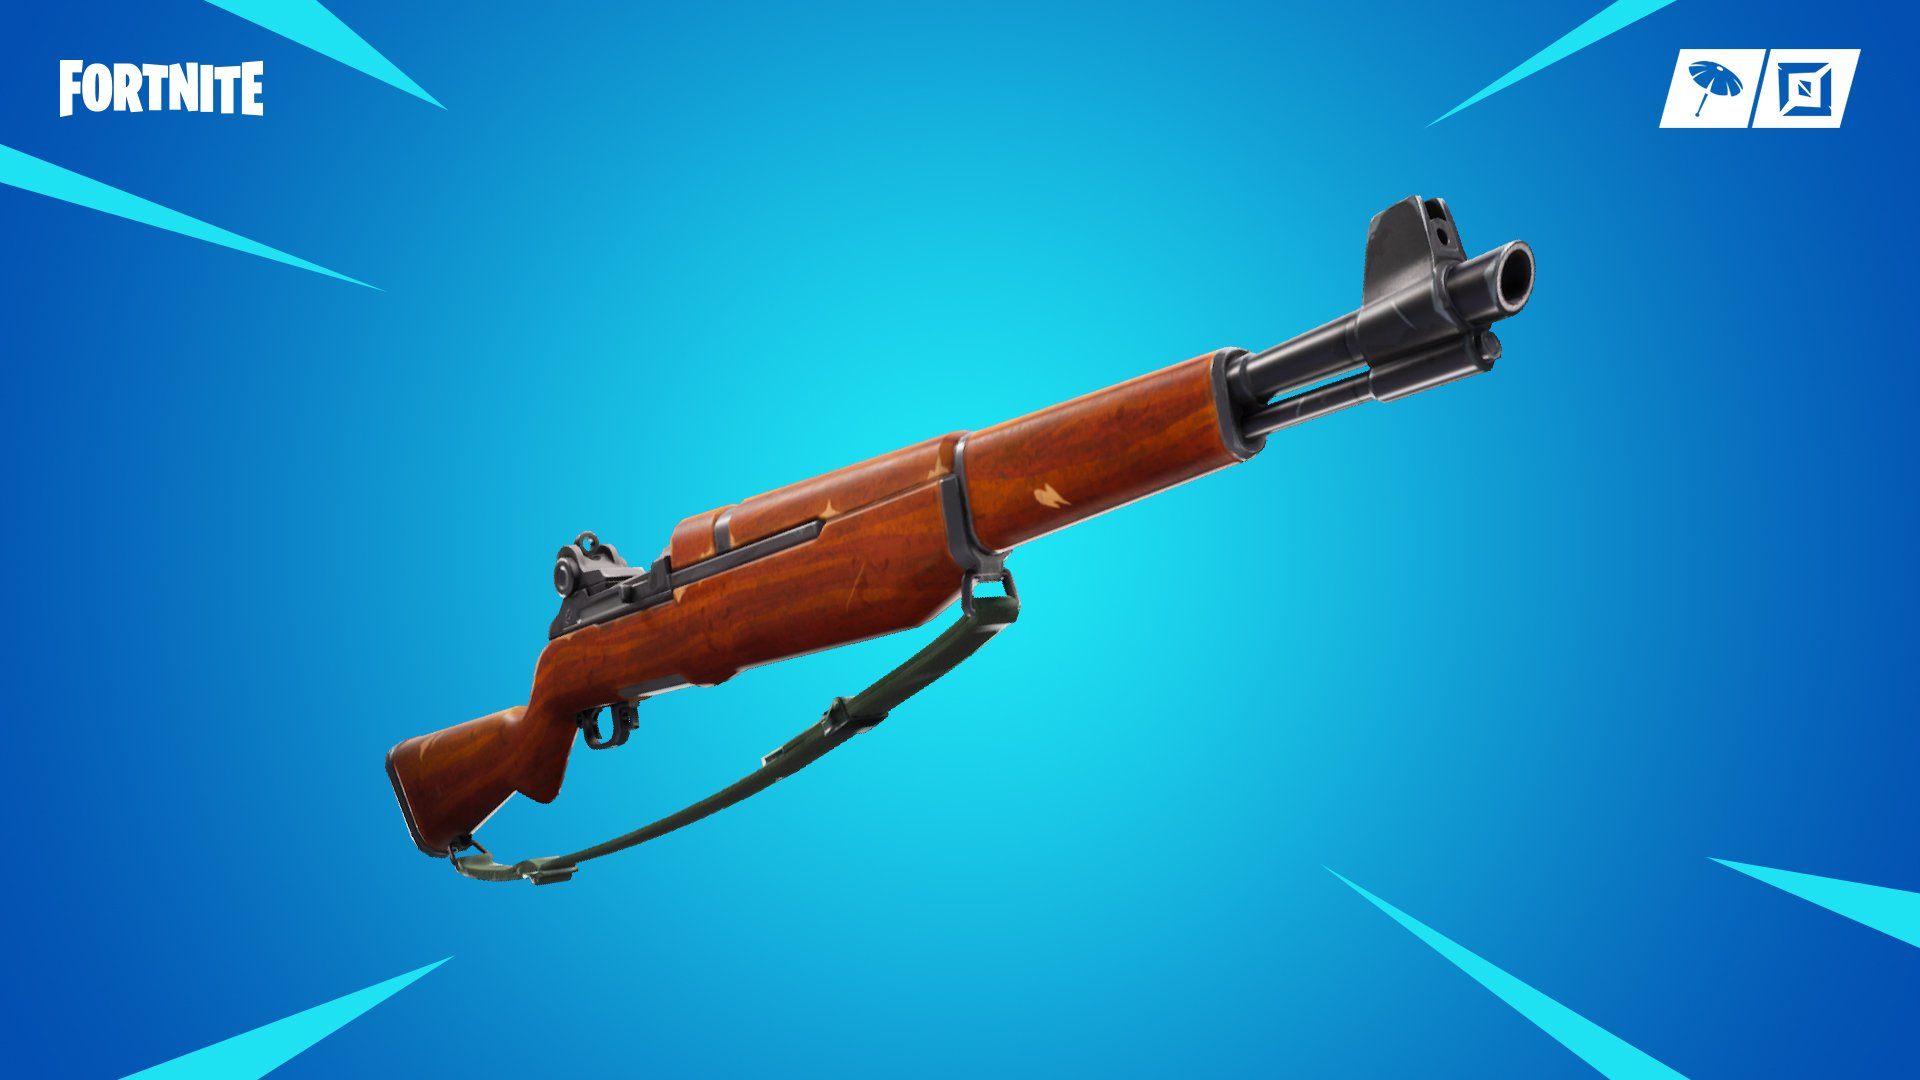 The Infantry Rifle is coming to Fortnite!